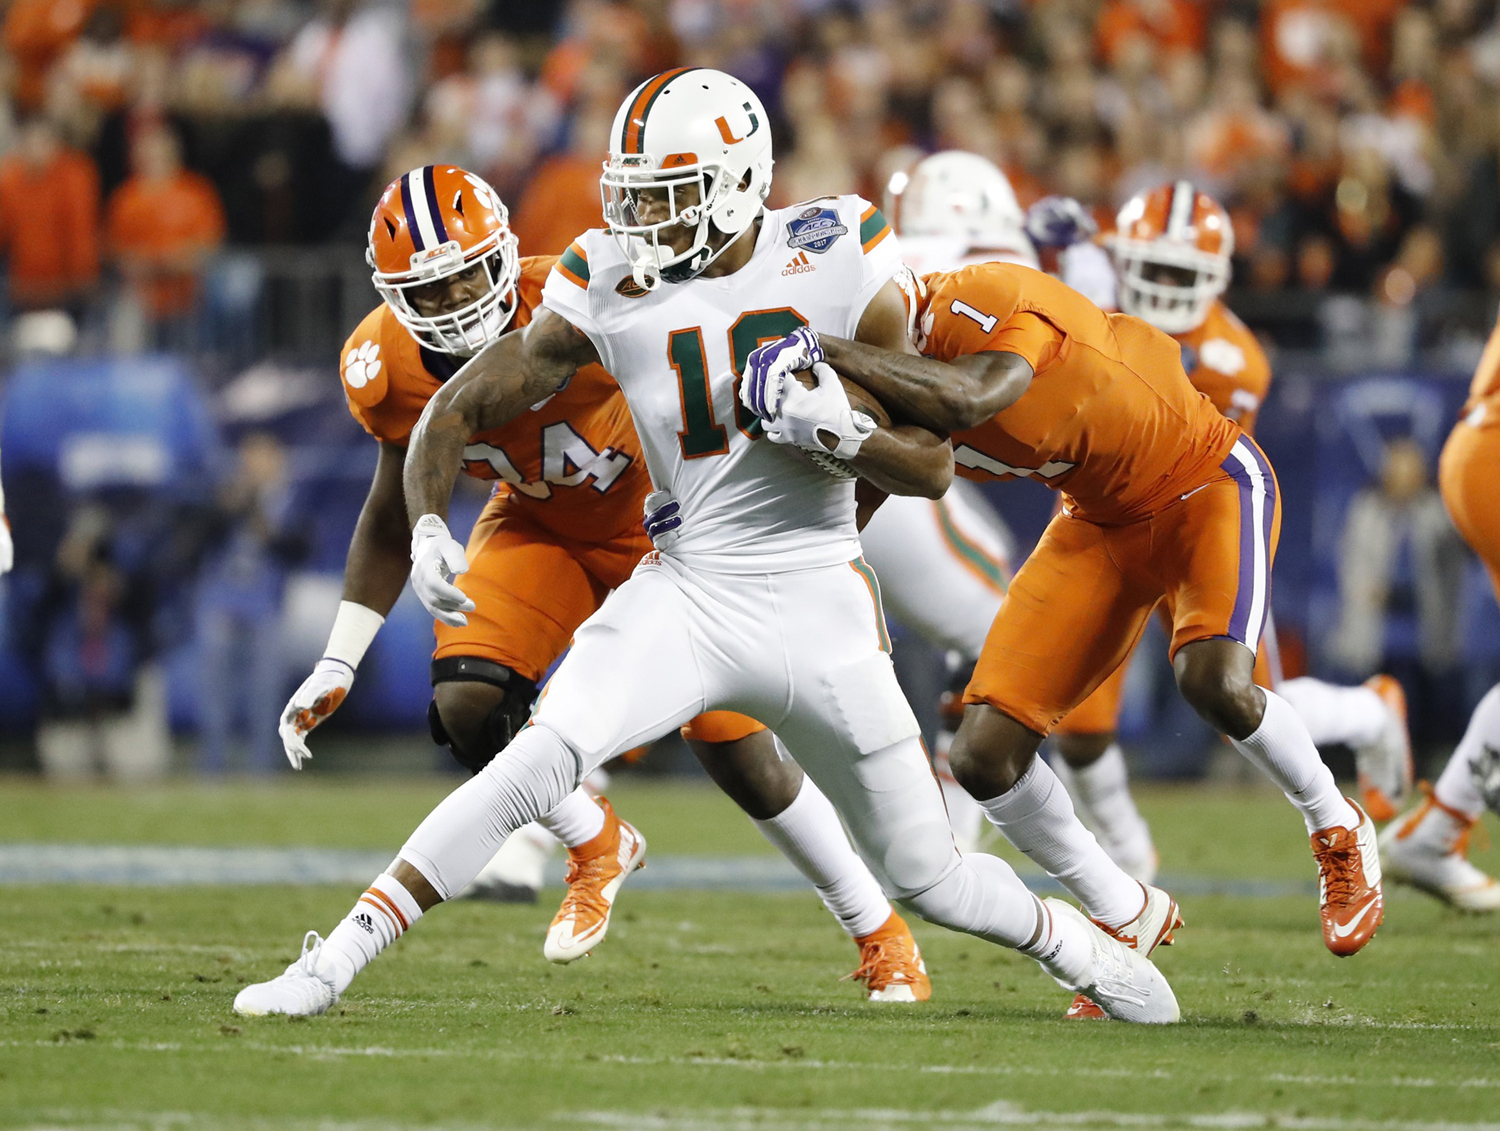 Miami Hurricanes wide receiver Lawrence Cager (18) receives a first down pass in the first quarter as the University of Miami Hurricanes play the Clemson Tigers in the ACC Championship Game on Dec. 2, 2017, in Charlotte, North Carolina.